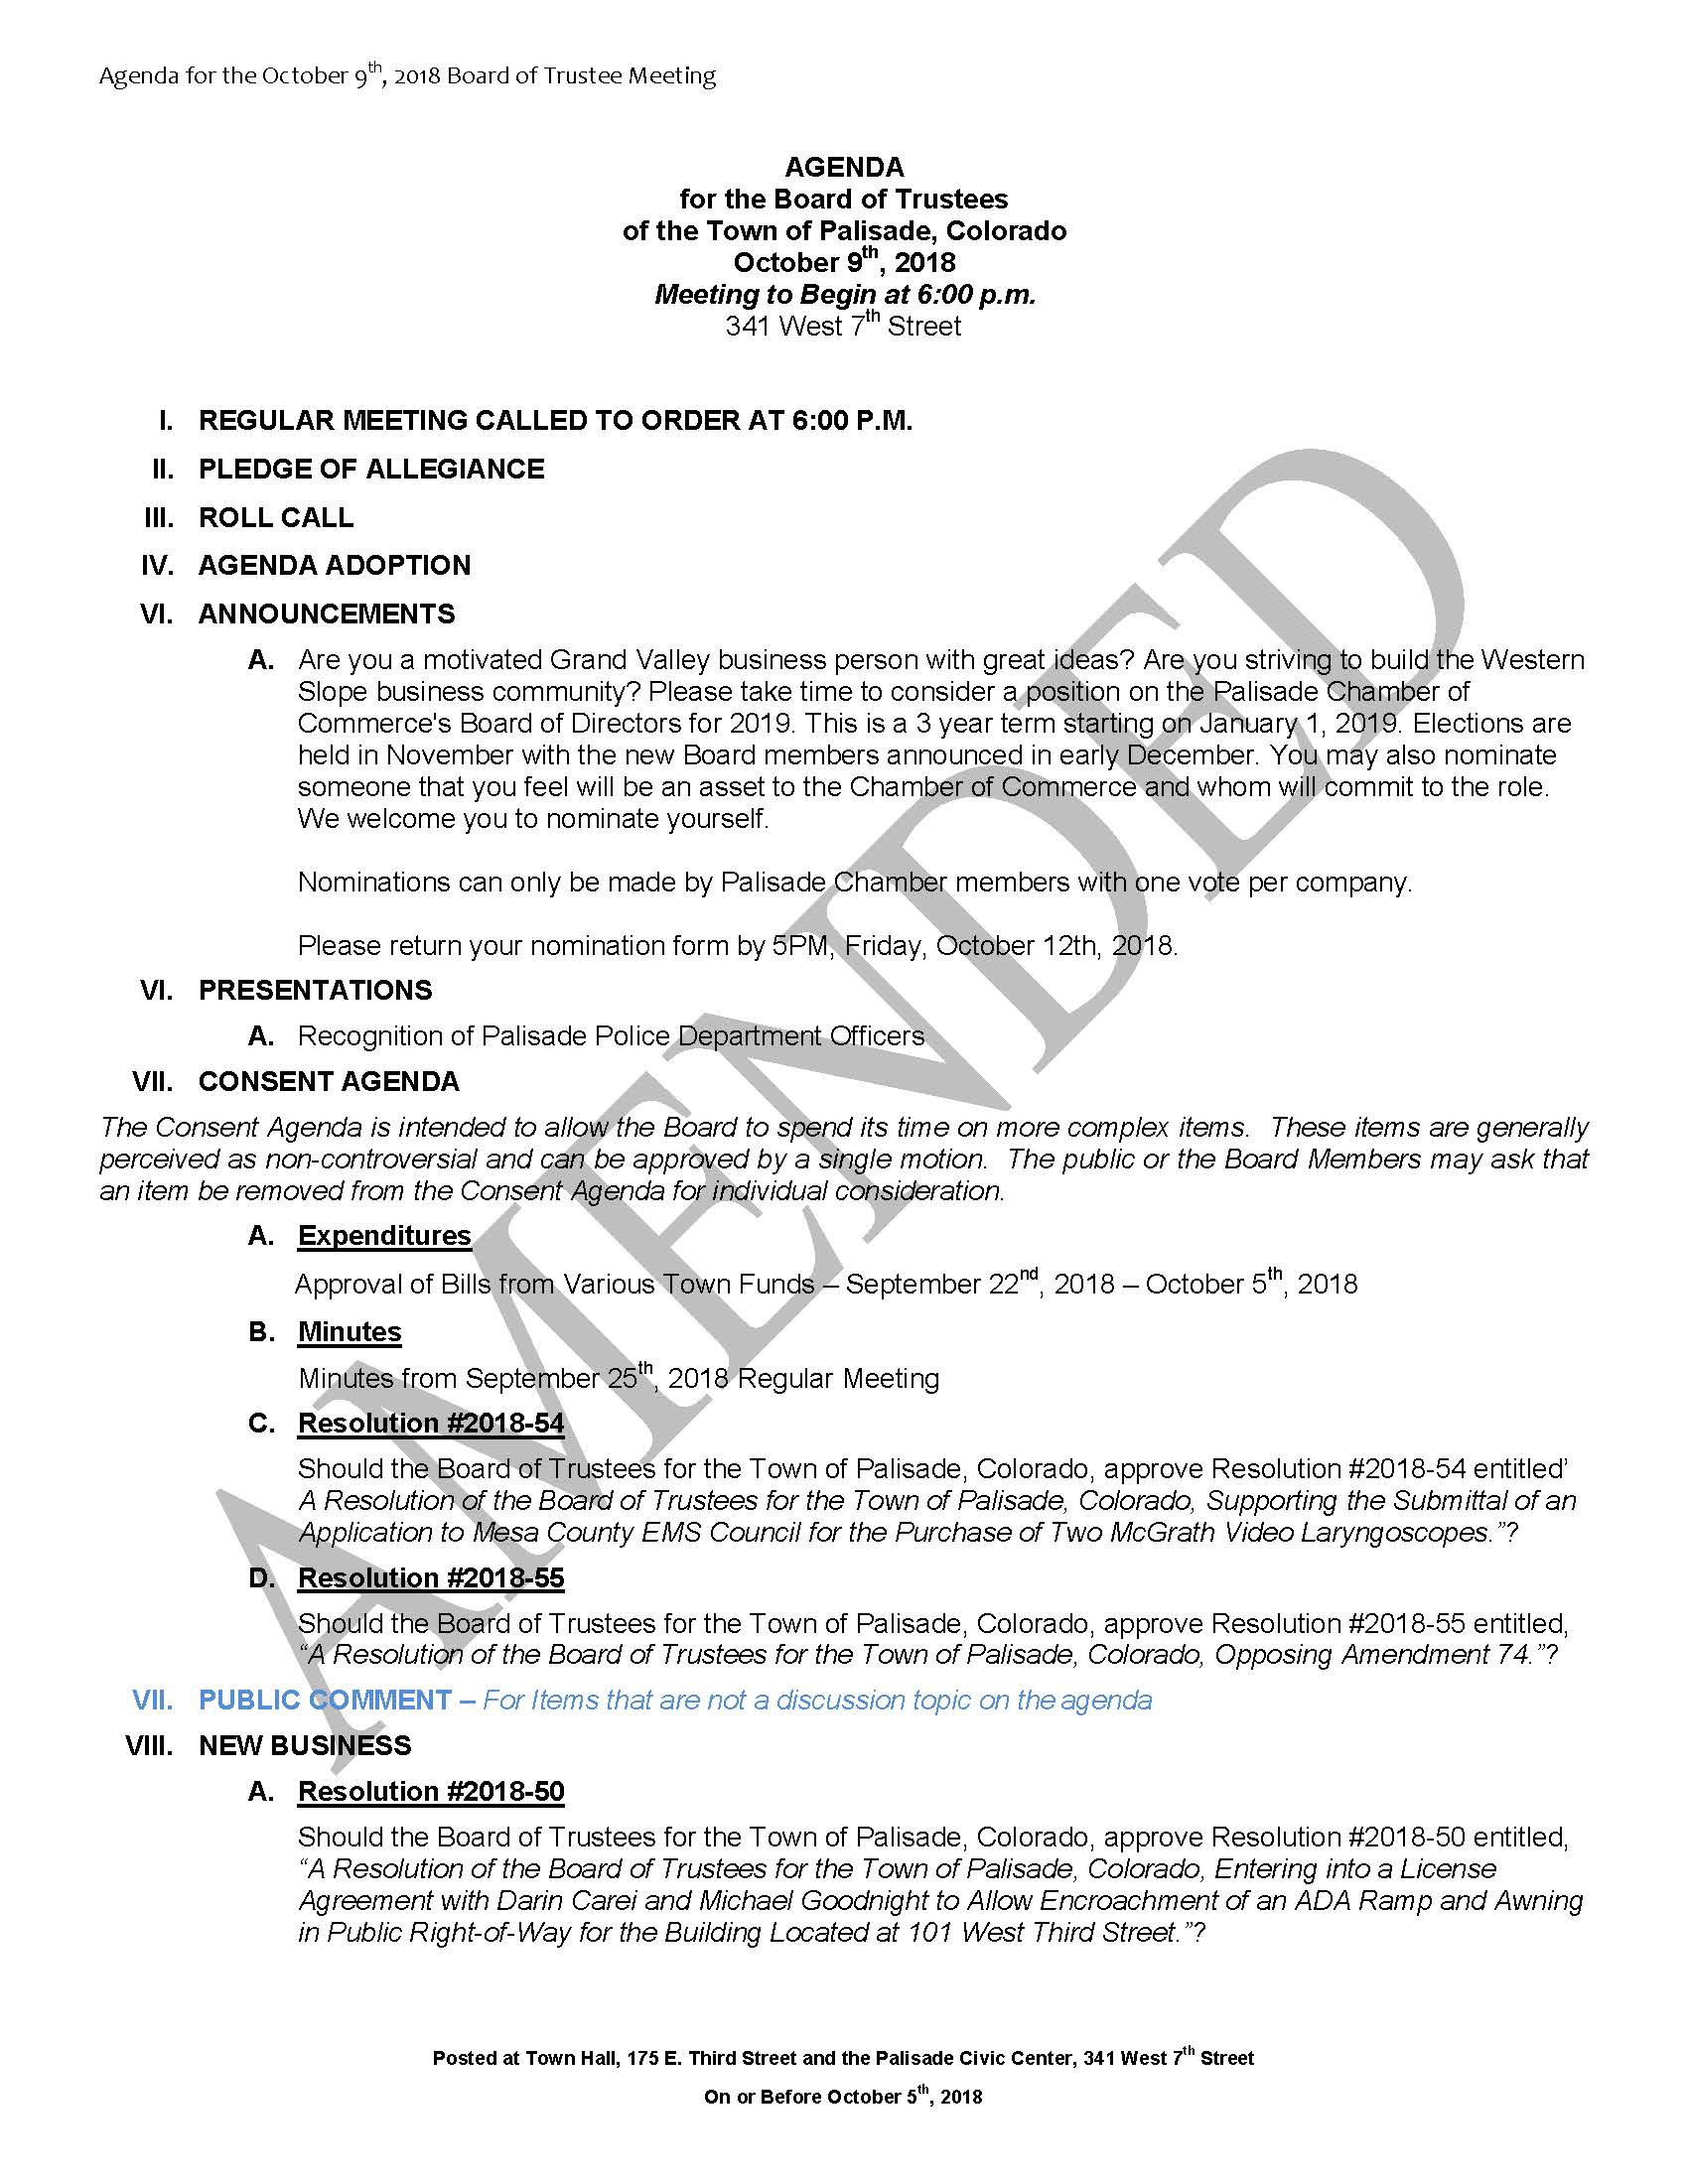 October 9th 2018 Board Meeting Agenda Page 1